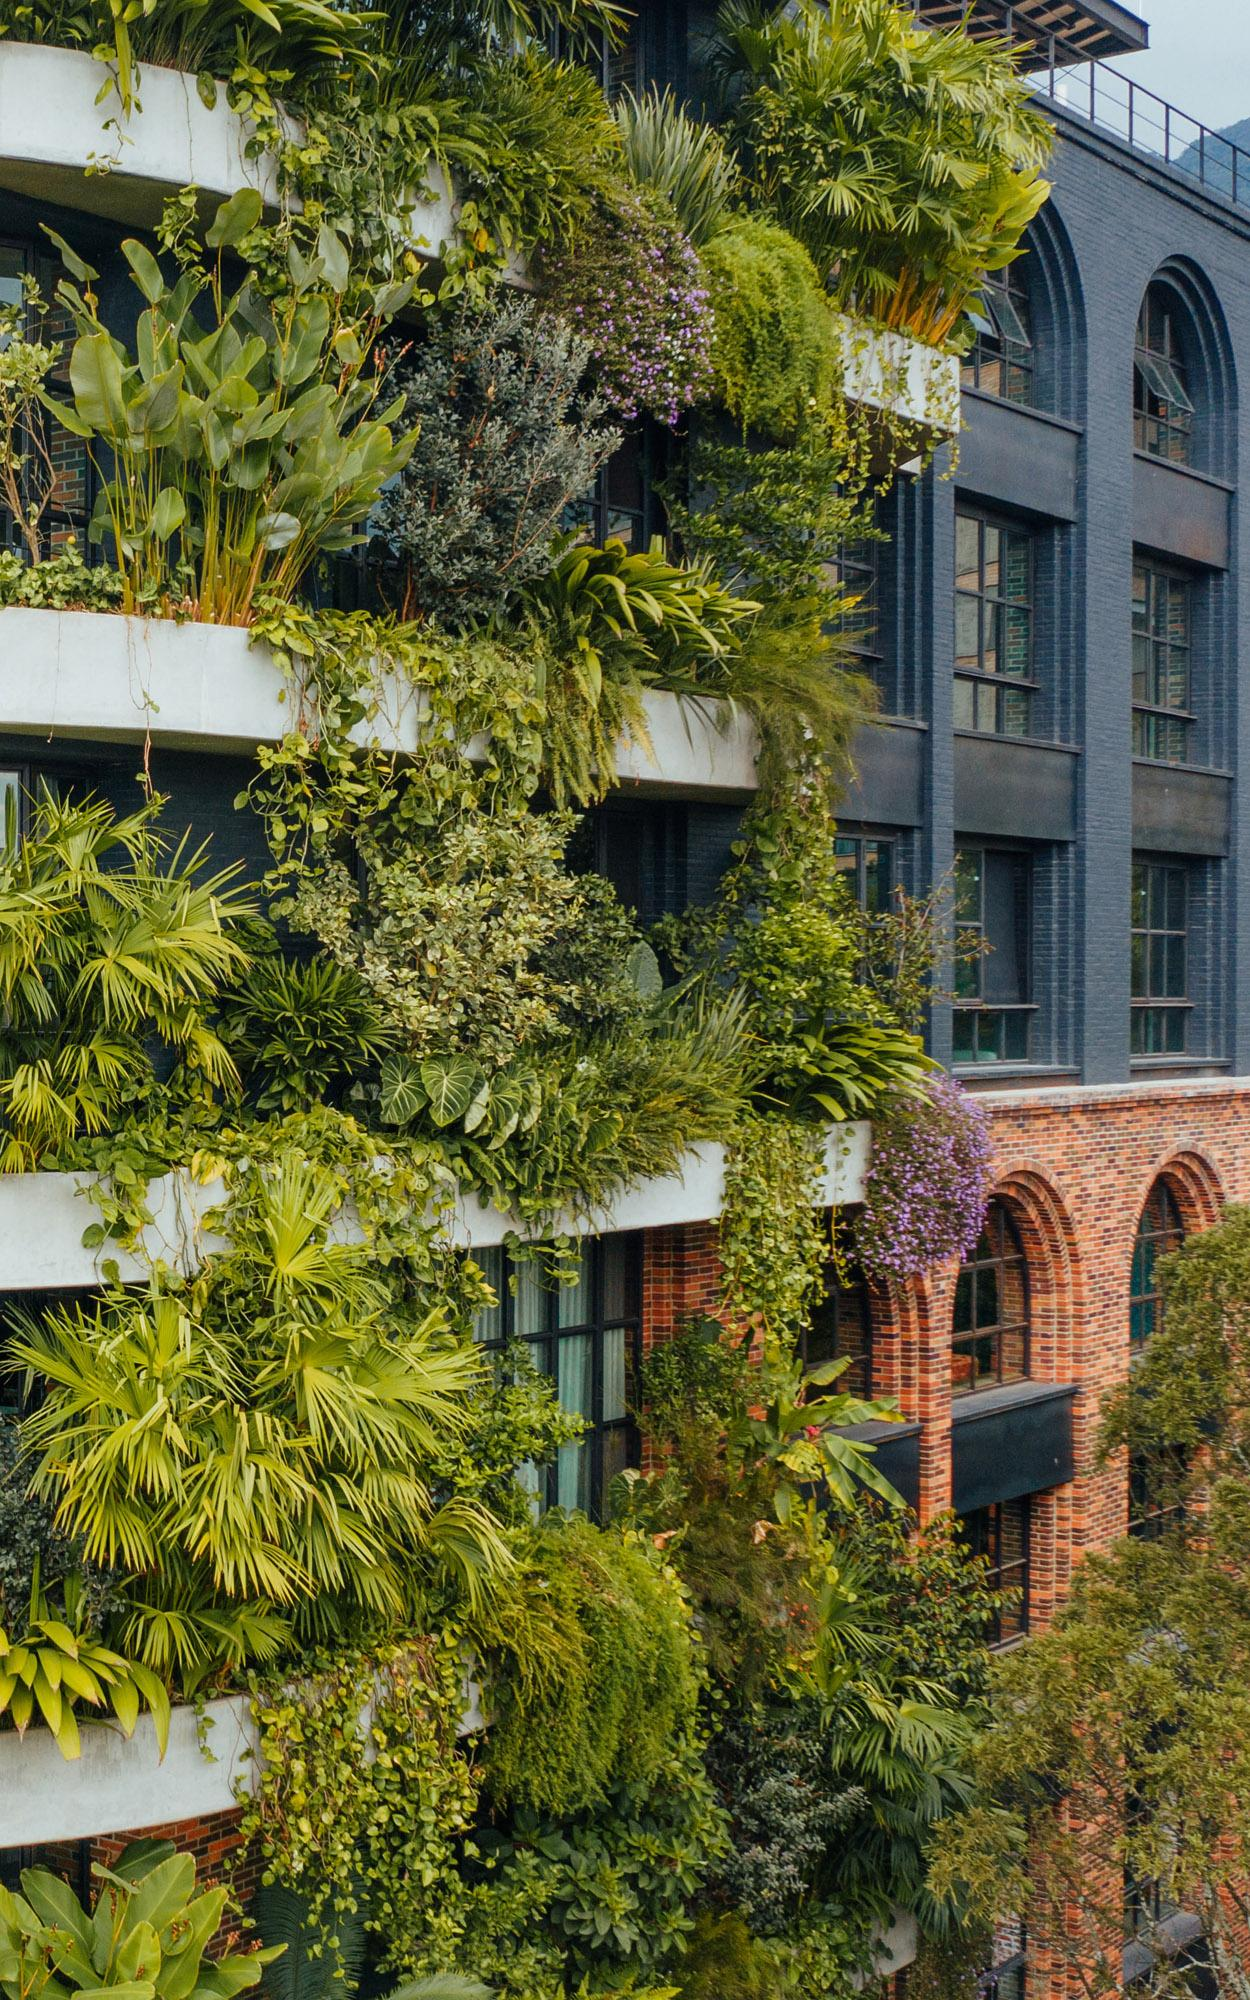 vertical gardens and tropical modernism in Medellin